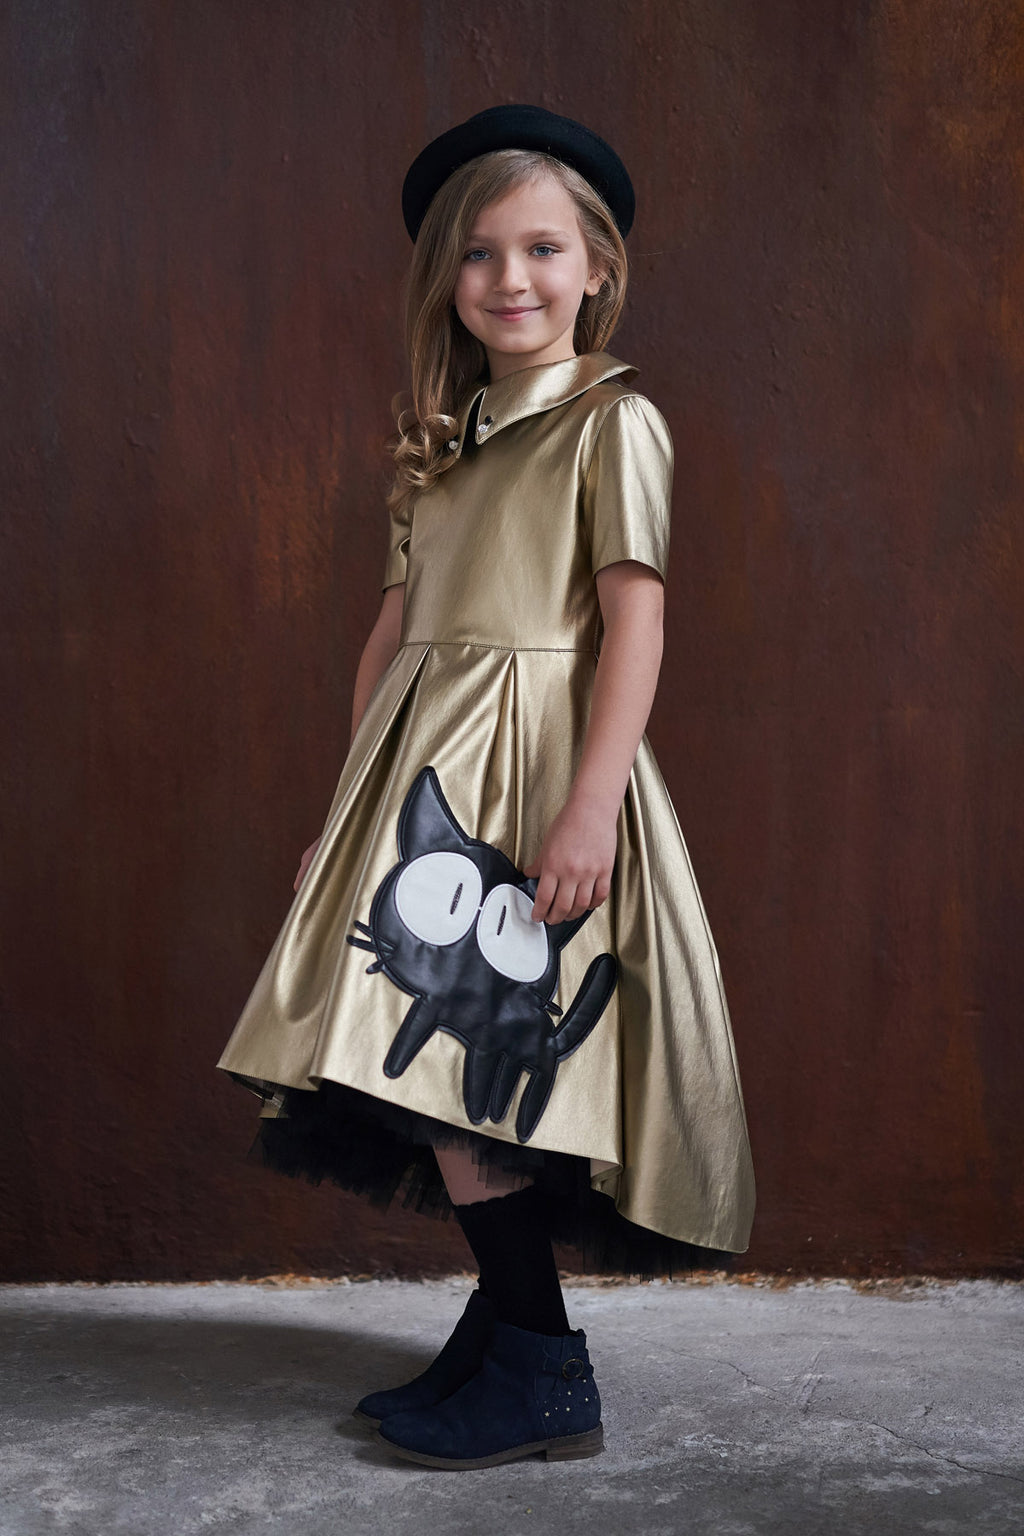 Gold Faux Leather High-Low Girls Dress with Cat Appliqué - LAZY FRANCIS - Shop in store at 406 Kings Road, Chelsea, London or shop online at www.lazyfrancis.com